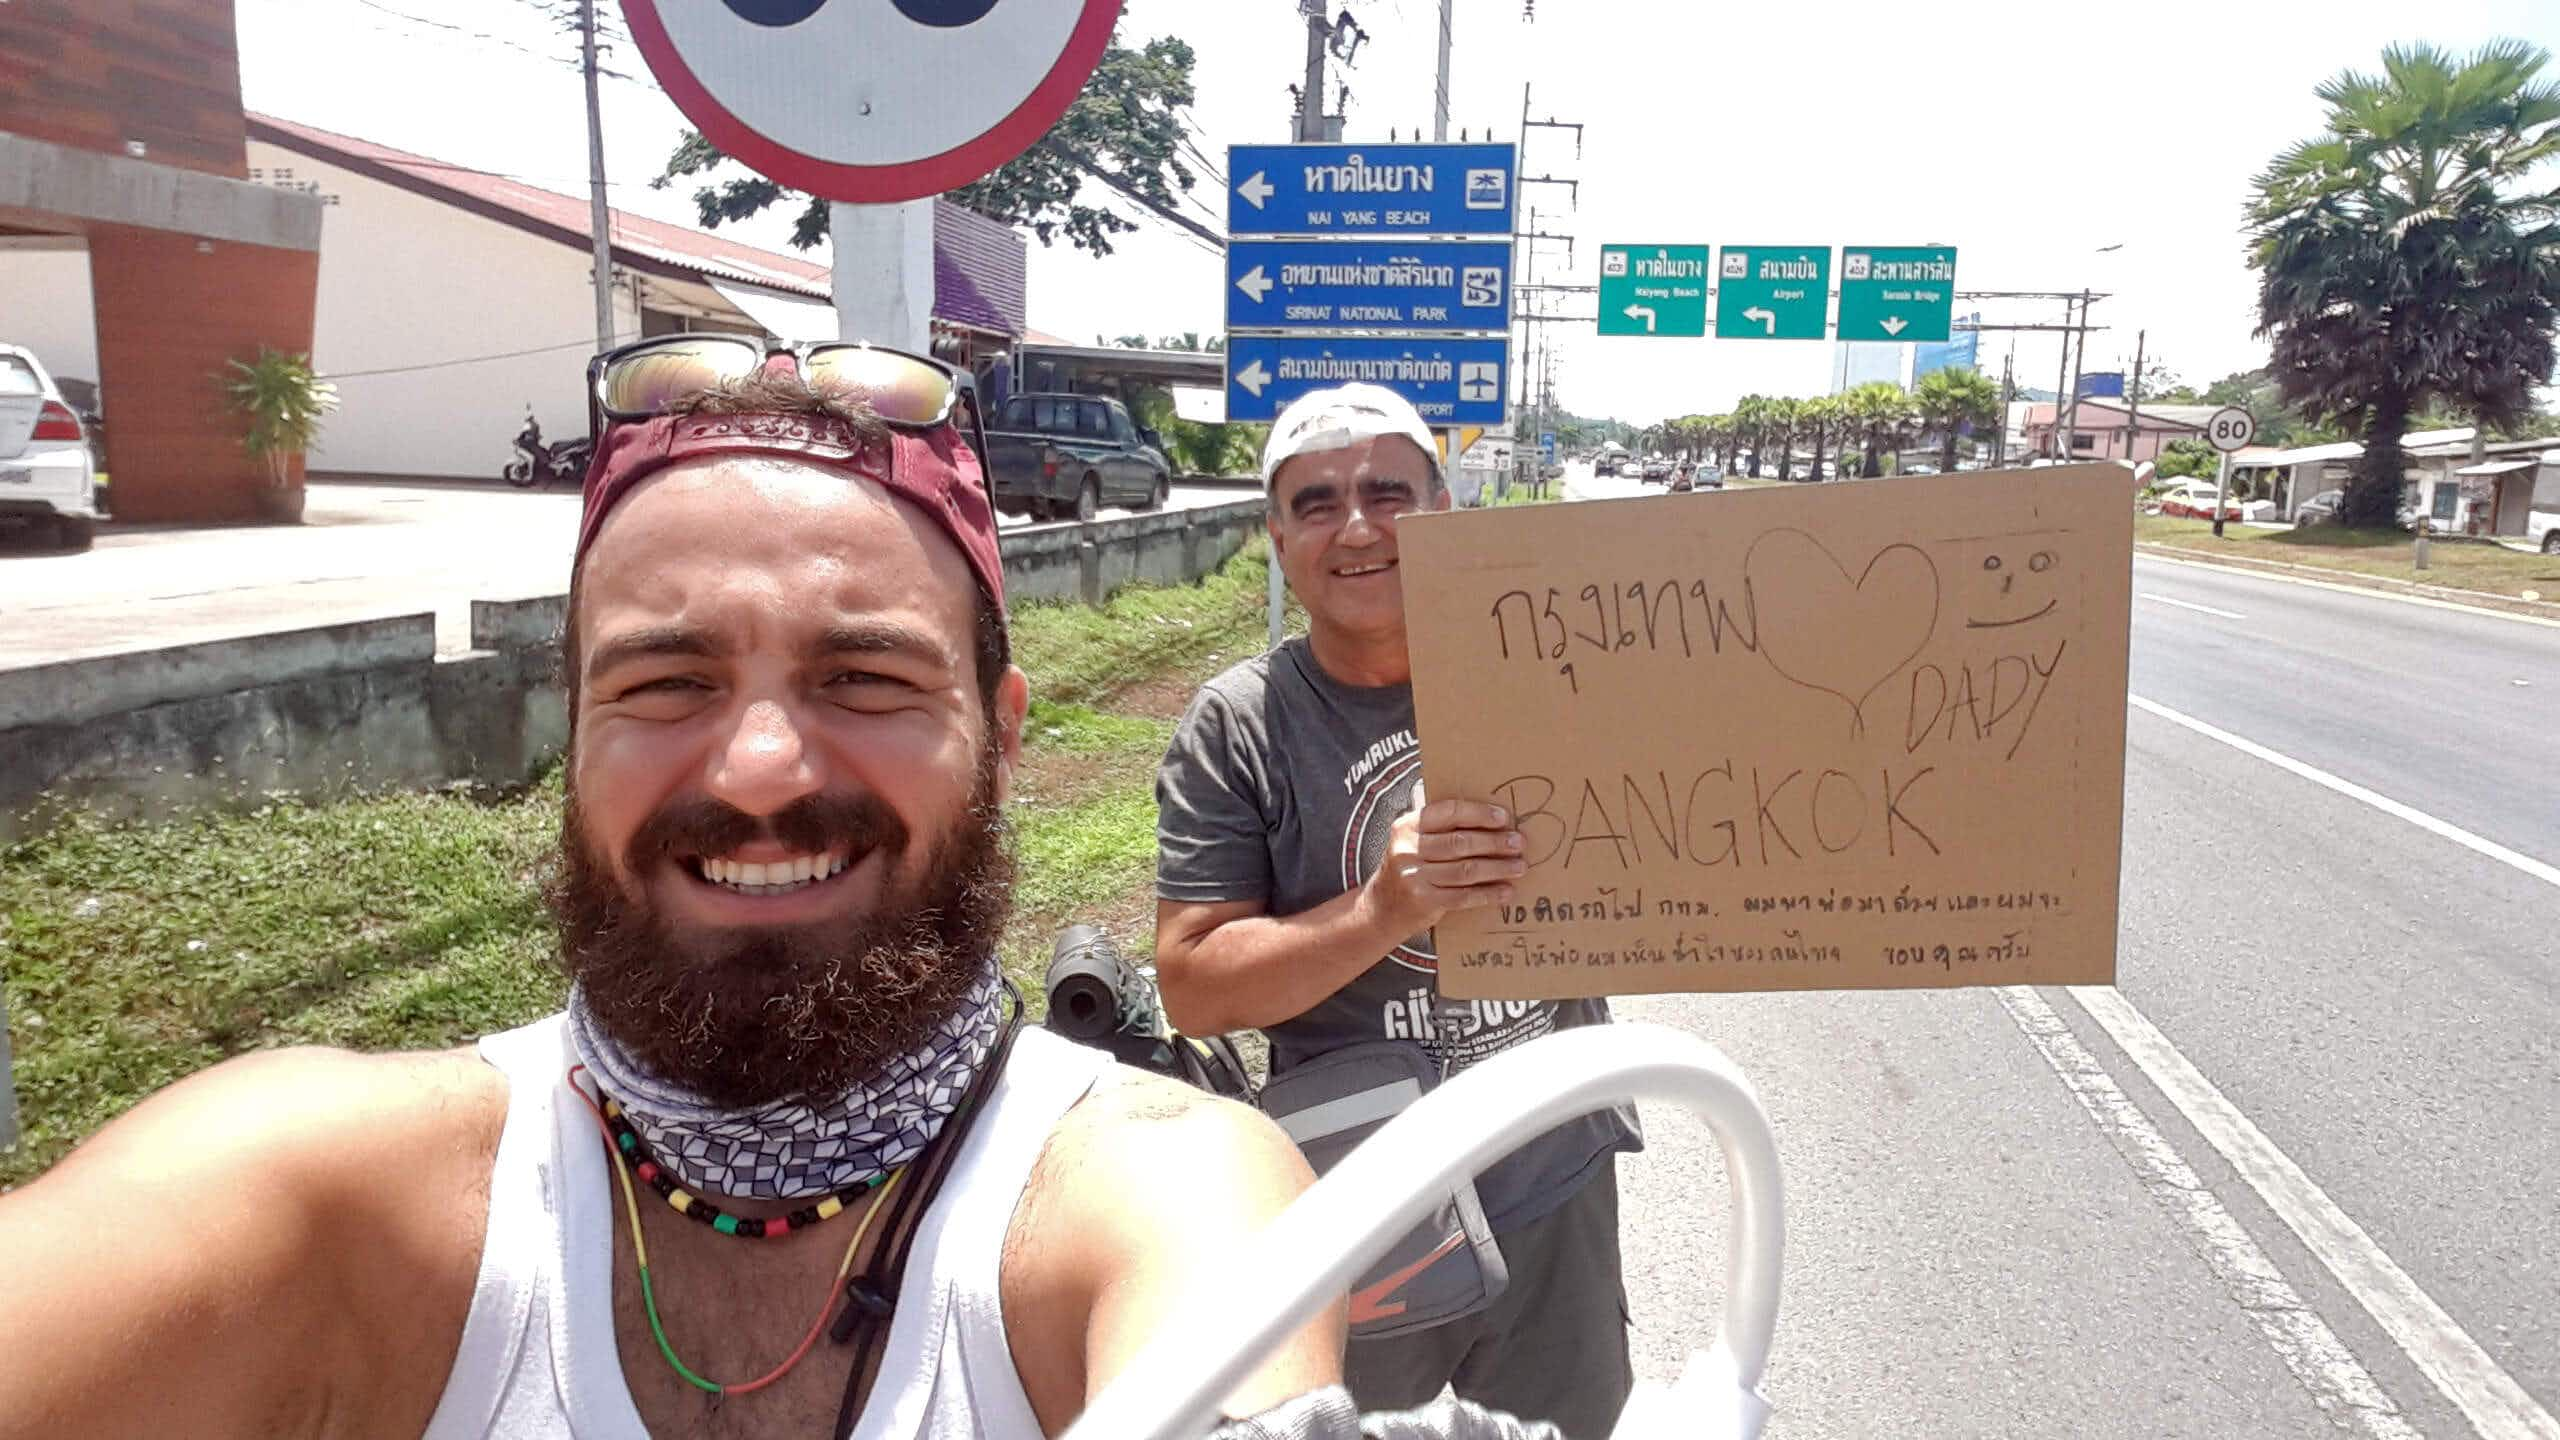 A concerned dad joined his son to hitch-hike around the world